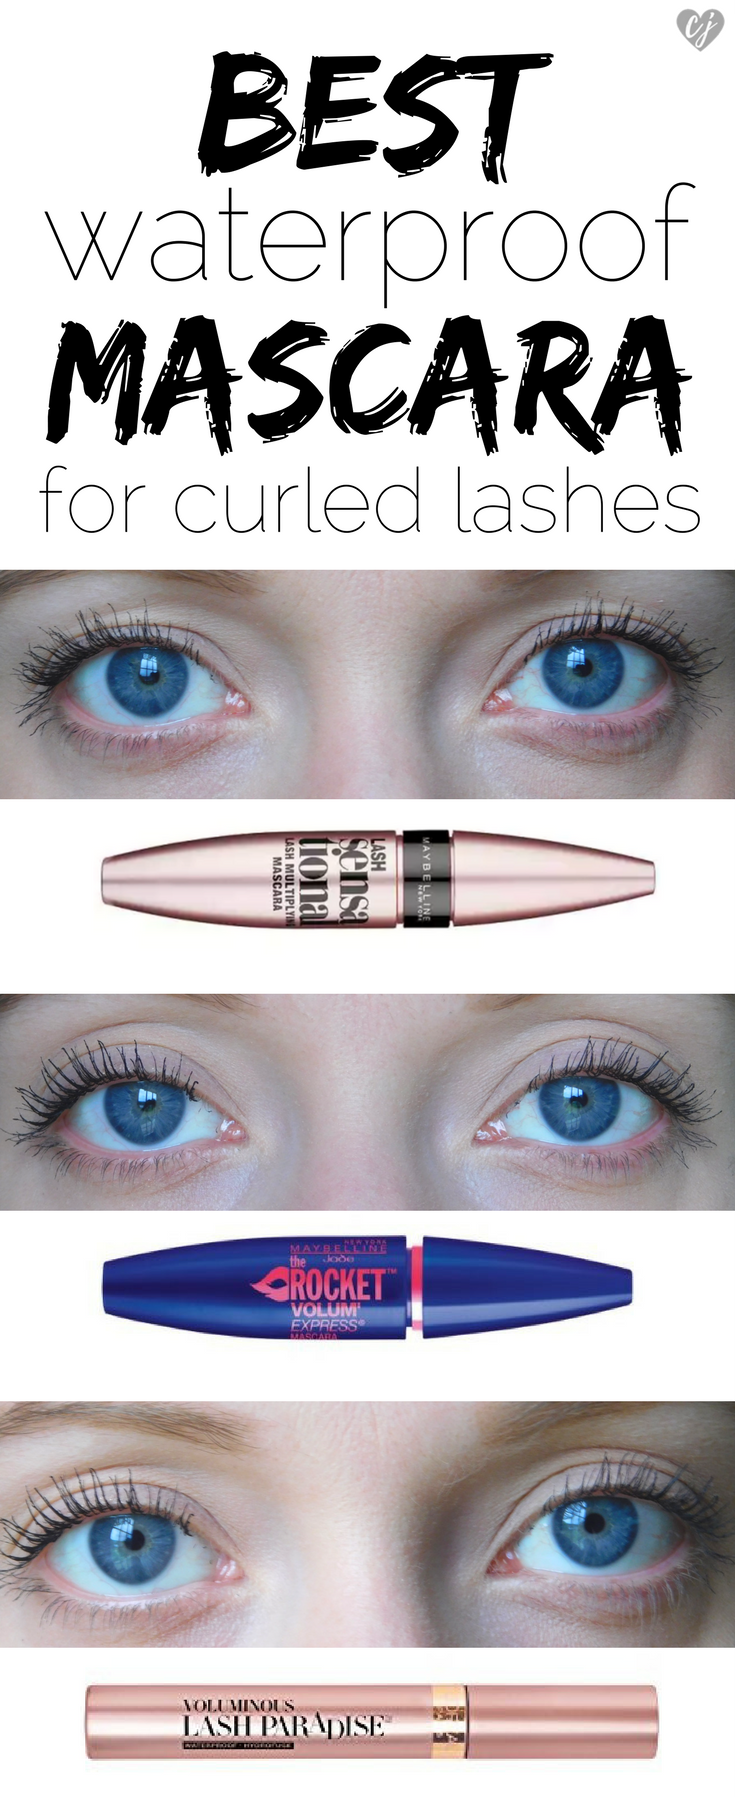 Best Waterproof Mascara For Curled Lashes